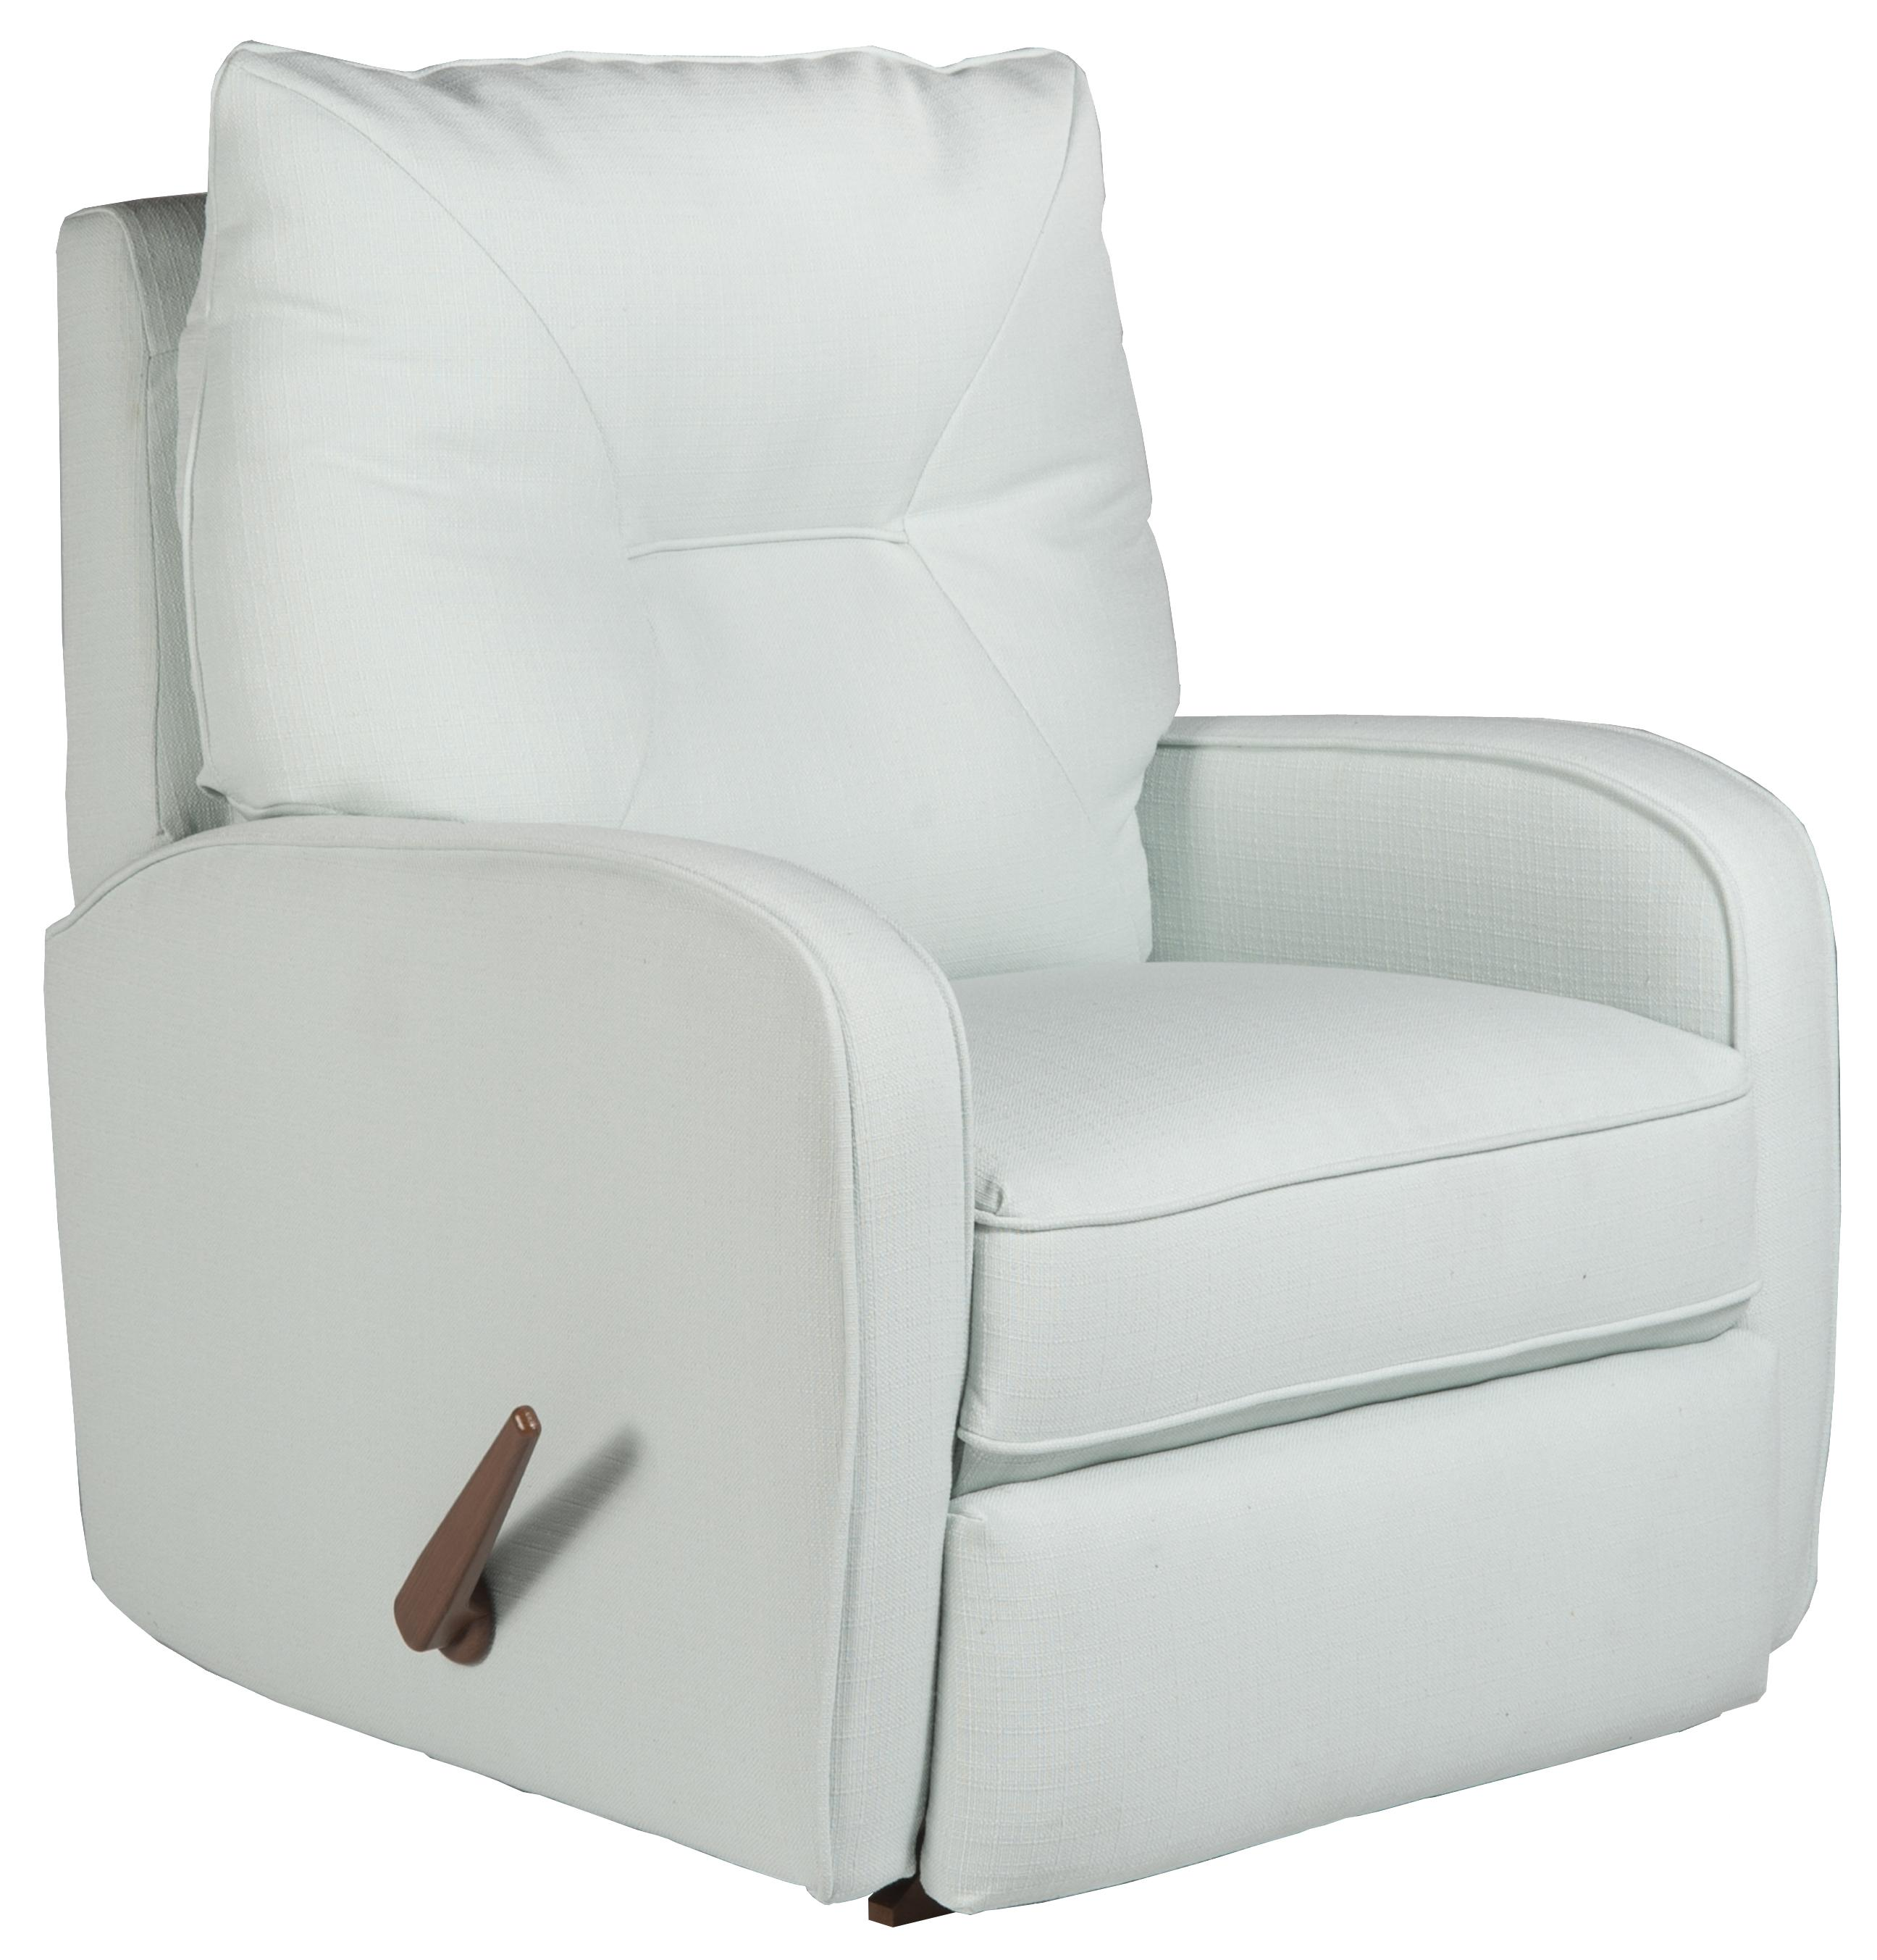 reclining chairs modern coleman camping best home furnishings recliners medium contemporary lomi